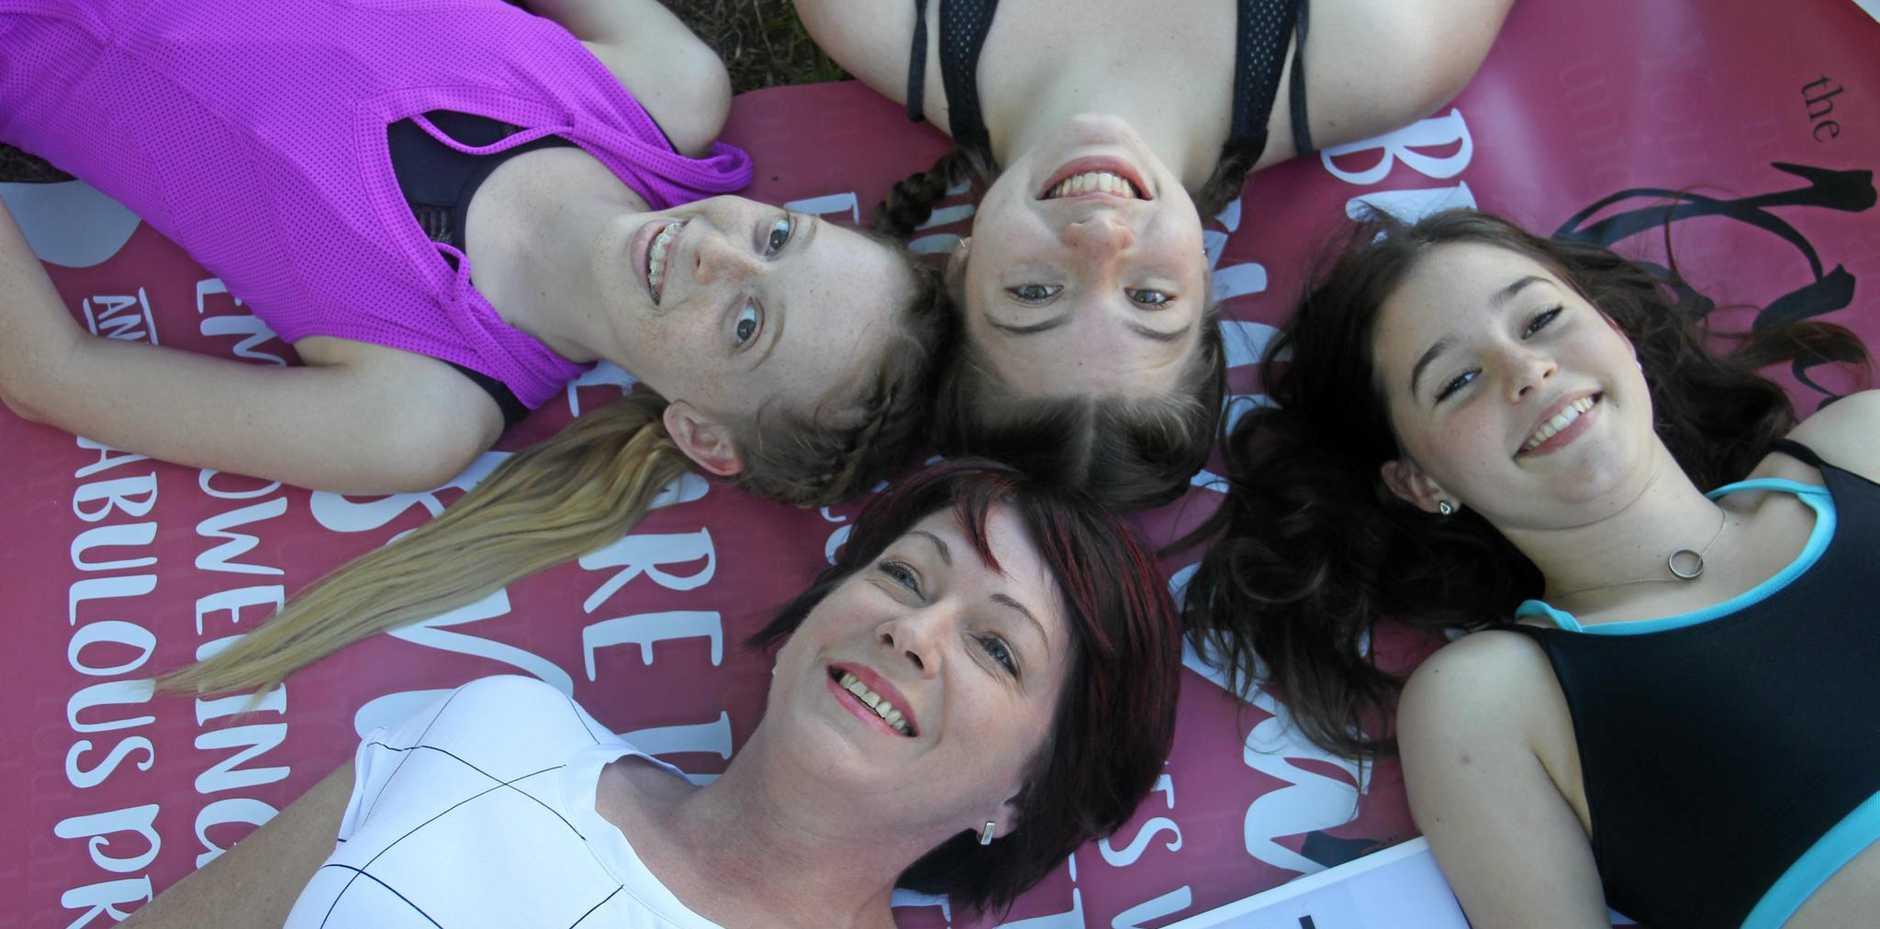 JUST FOR GIRLS: Artist and arts educator Jodie Kearns will conduct a Power of Words Project at the Just For Girls event on July 23. Joining her are (clockwise) Sophie van Moolenbrek, 13, Lily Daniel, 14, and Emma Brook, 13 from Mackay Fame Talent School.